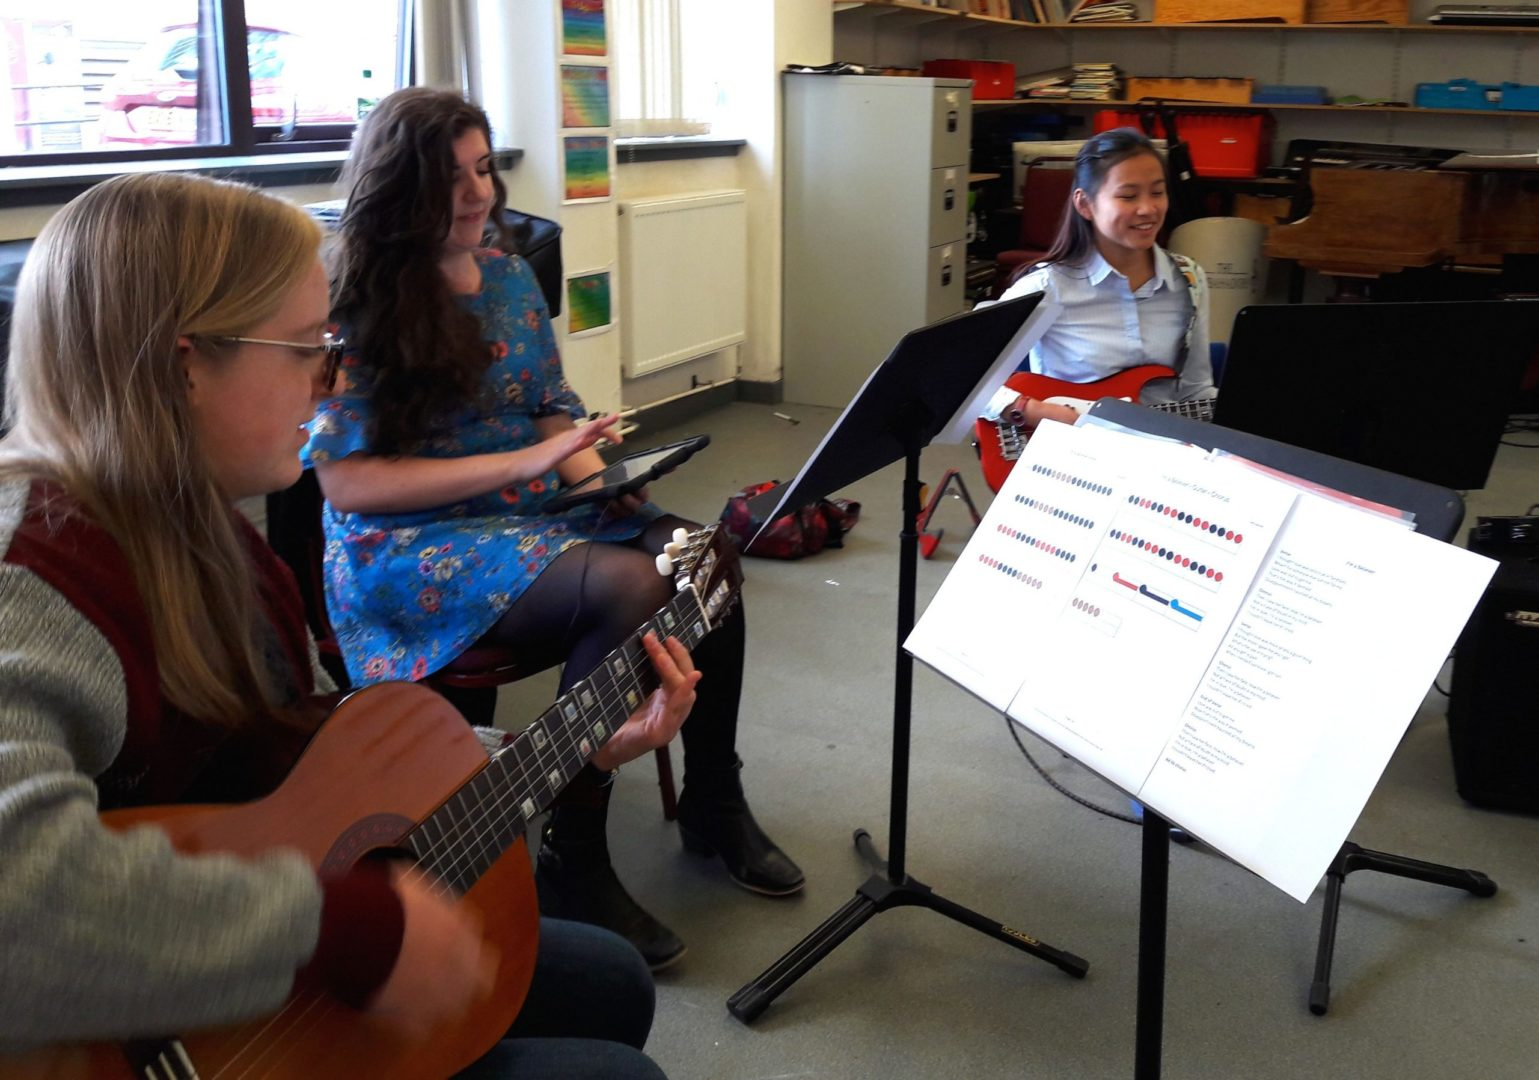 3 women play in a band using Figurenotes notation. 1 on guitar, 1 on iPad, and 1 on bass guitar